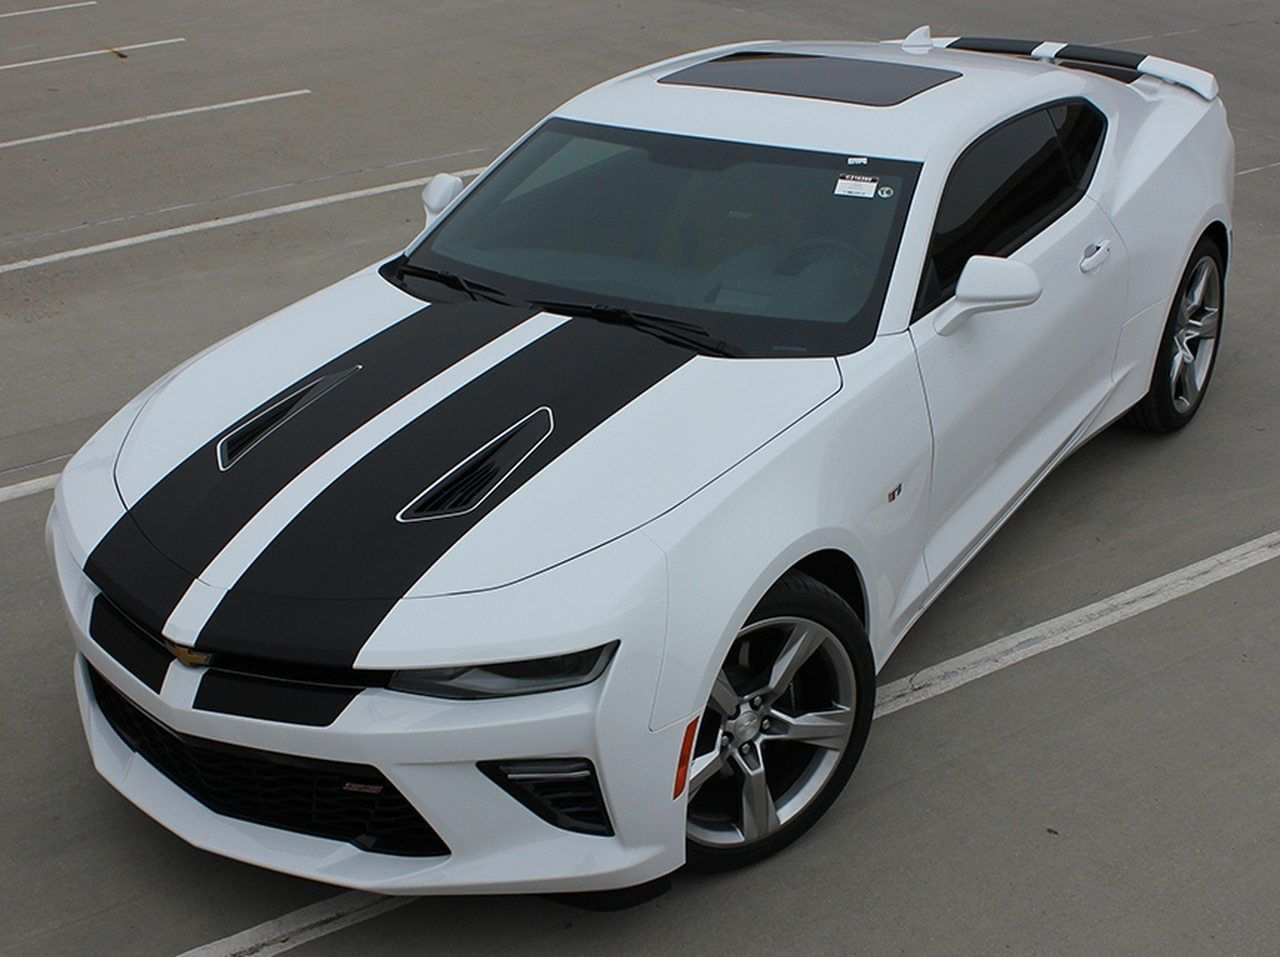 2016 Camaro Duel Rally Stripes Cam Sport 2016 2017 2018 3m 1080 Series Wrap Film Chevy Trucks New Sports Cars Sports Cars